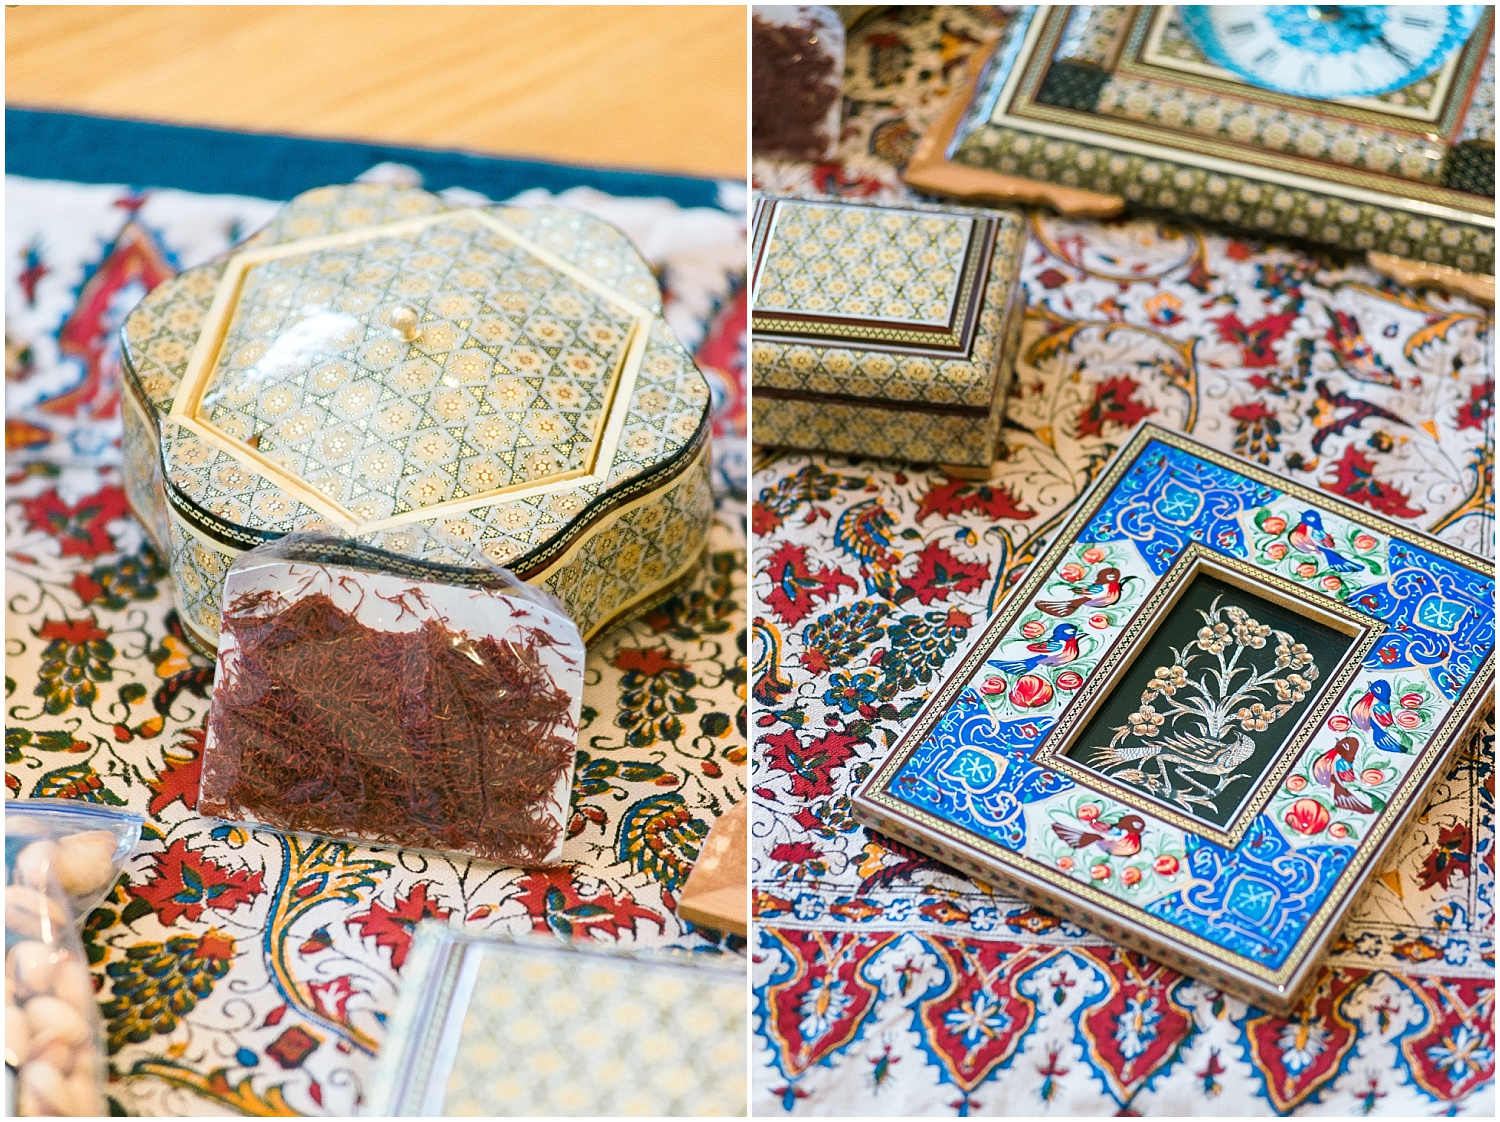 Aylua's father brought her many wonderful gifts from his home country, Iran.